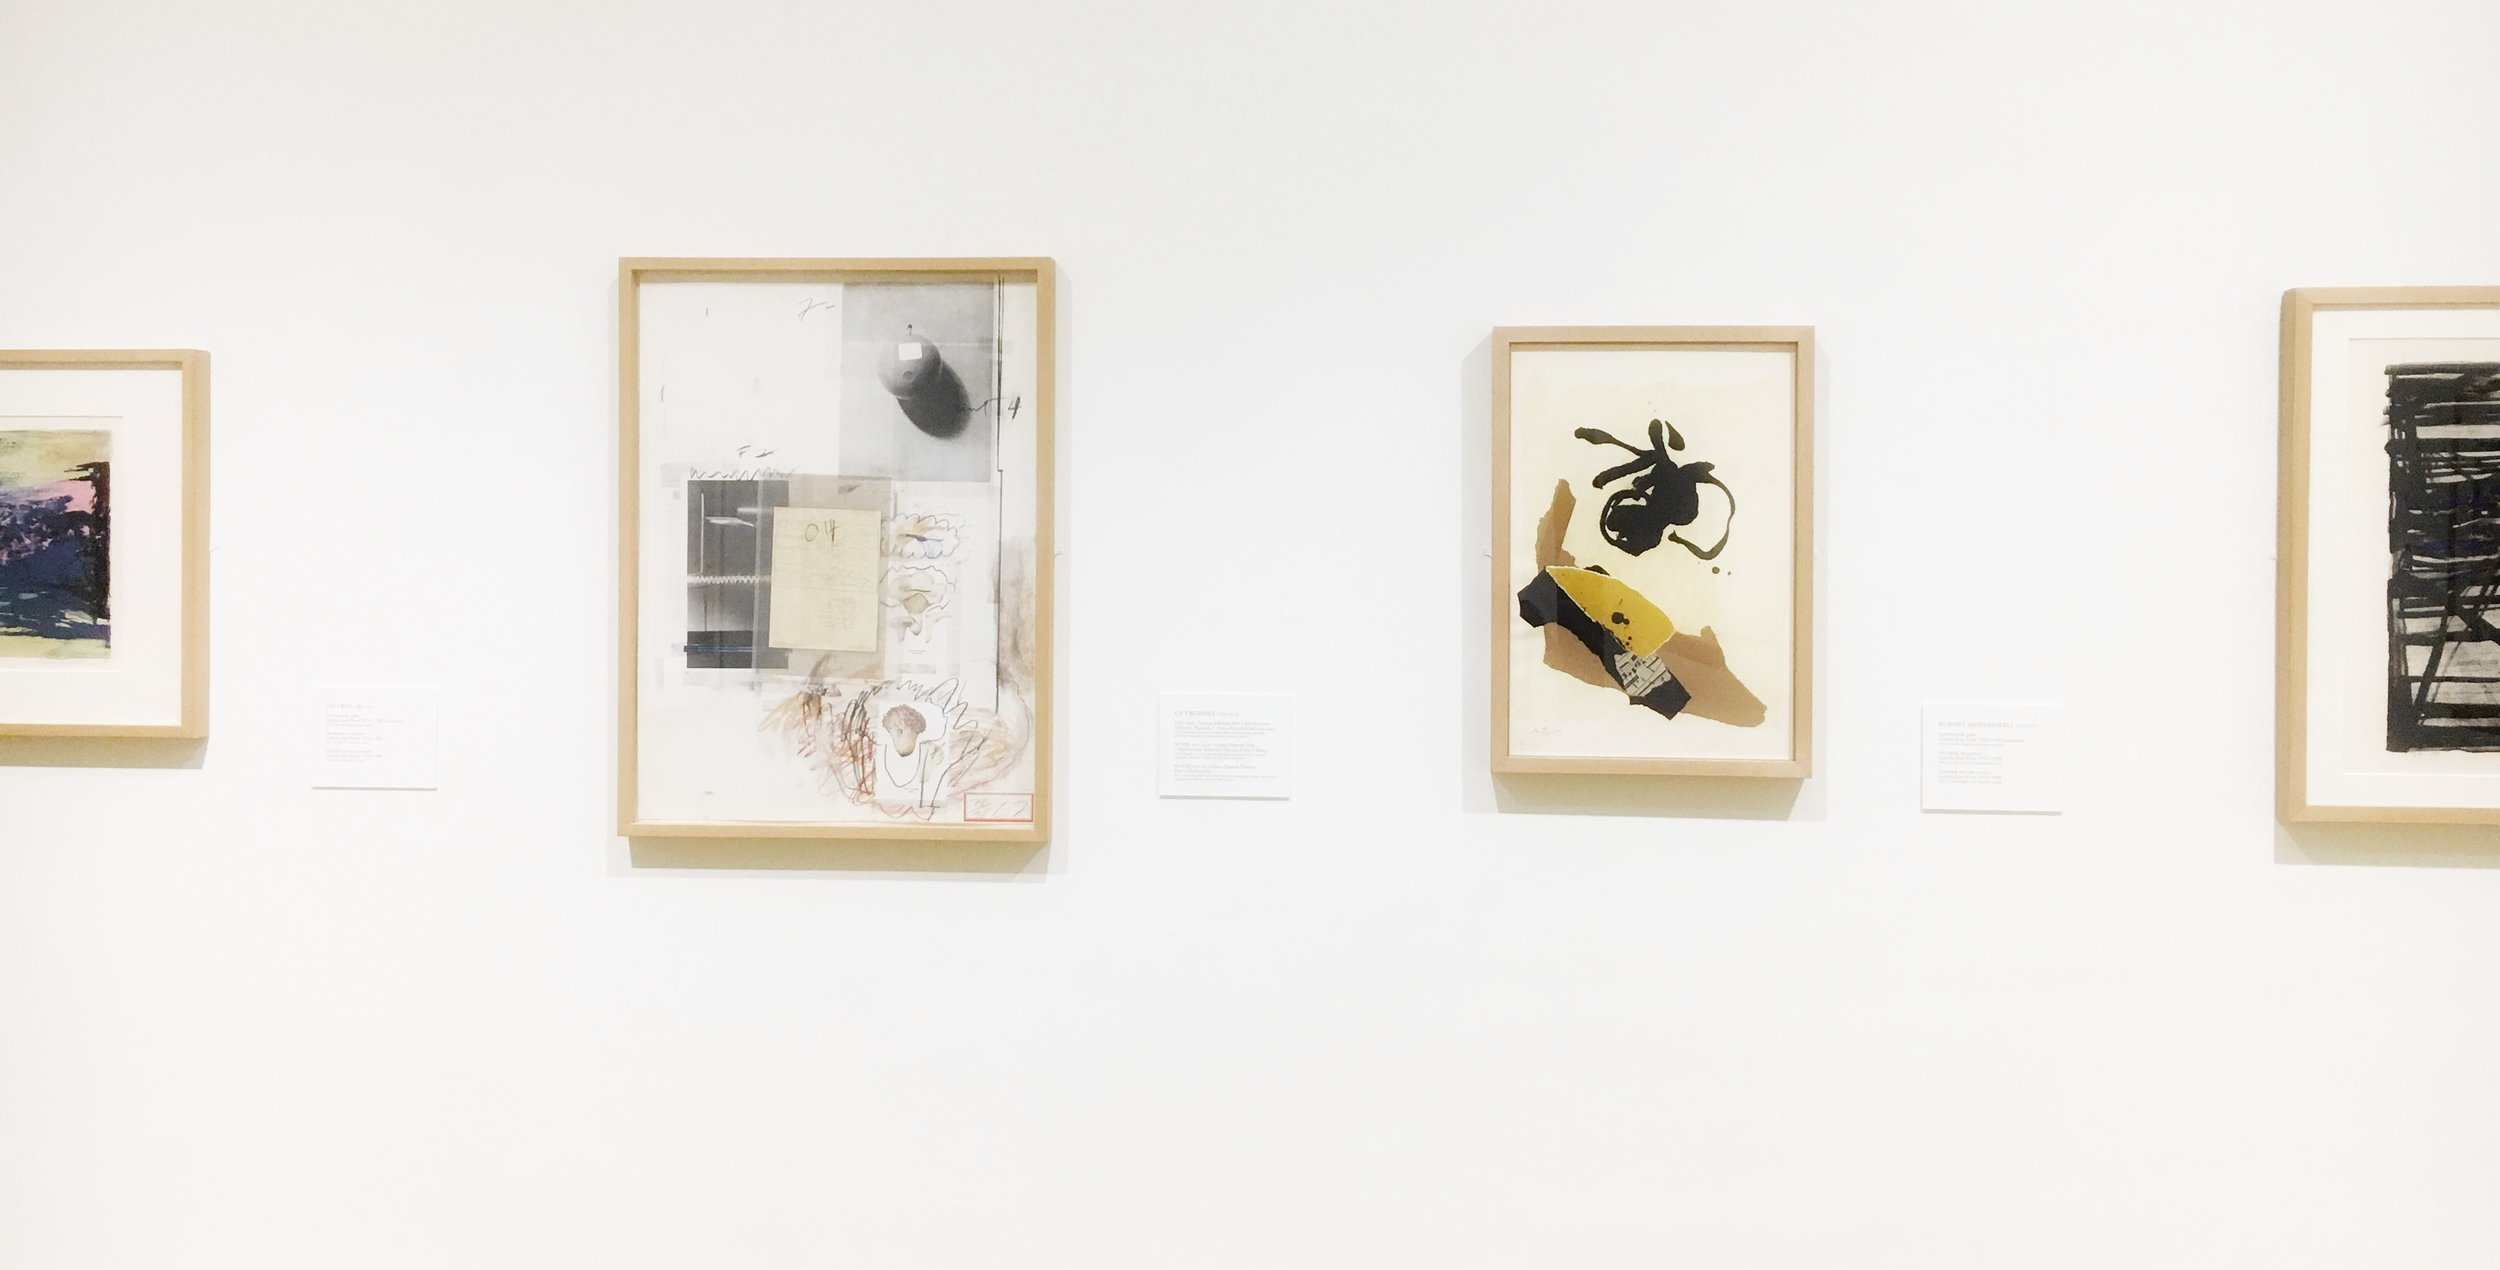 Works by Cy Twombly & Robert Motherwell at Bilbao Fine Arts Museum